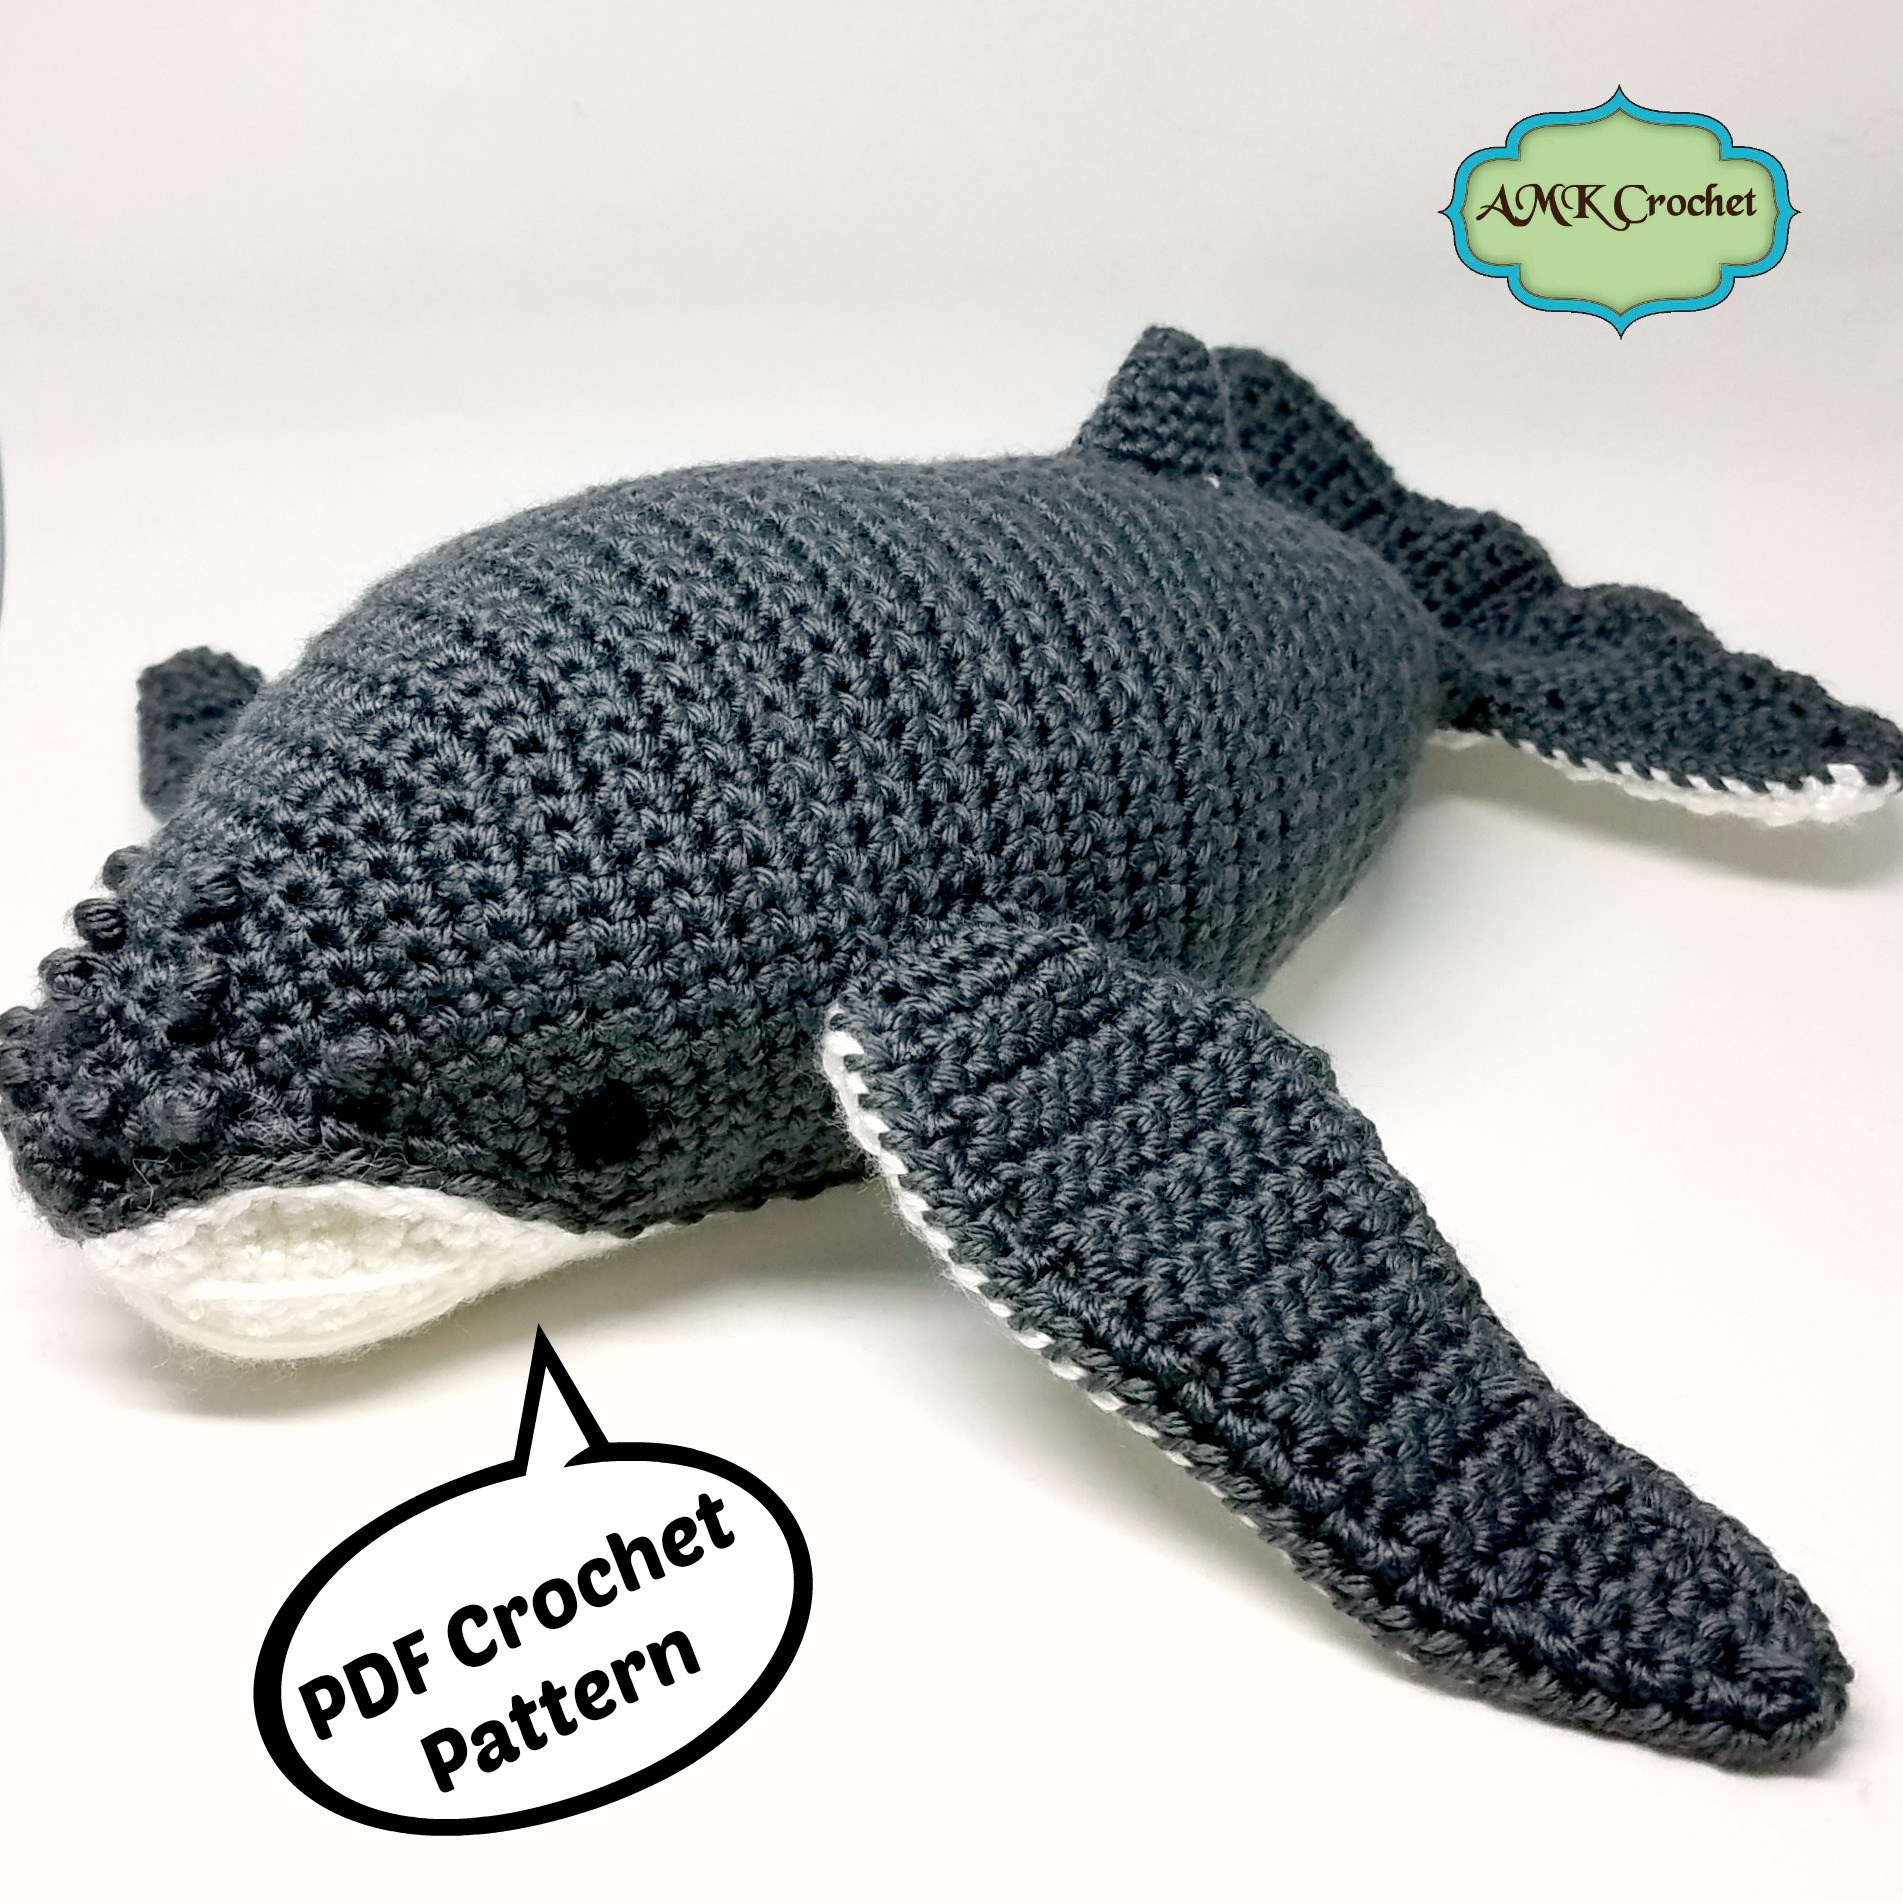 Crochet Humpback Whale Plush Toy Pattern Amk Crochet